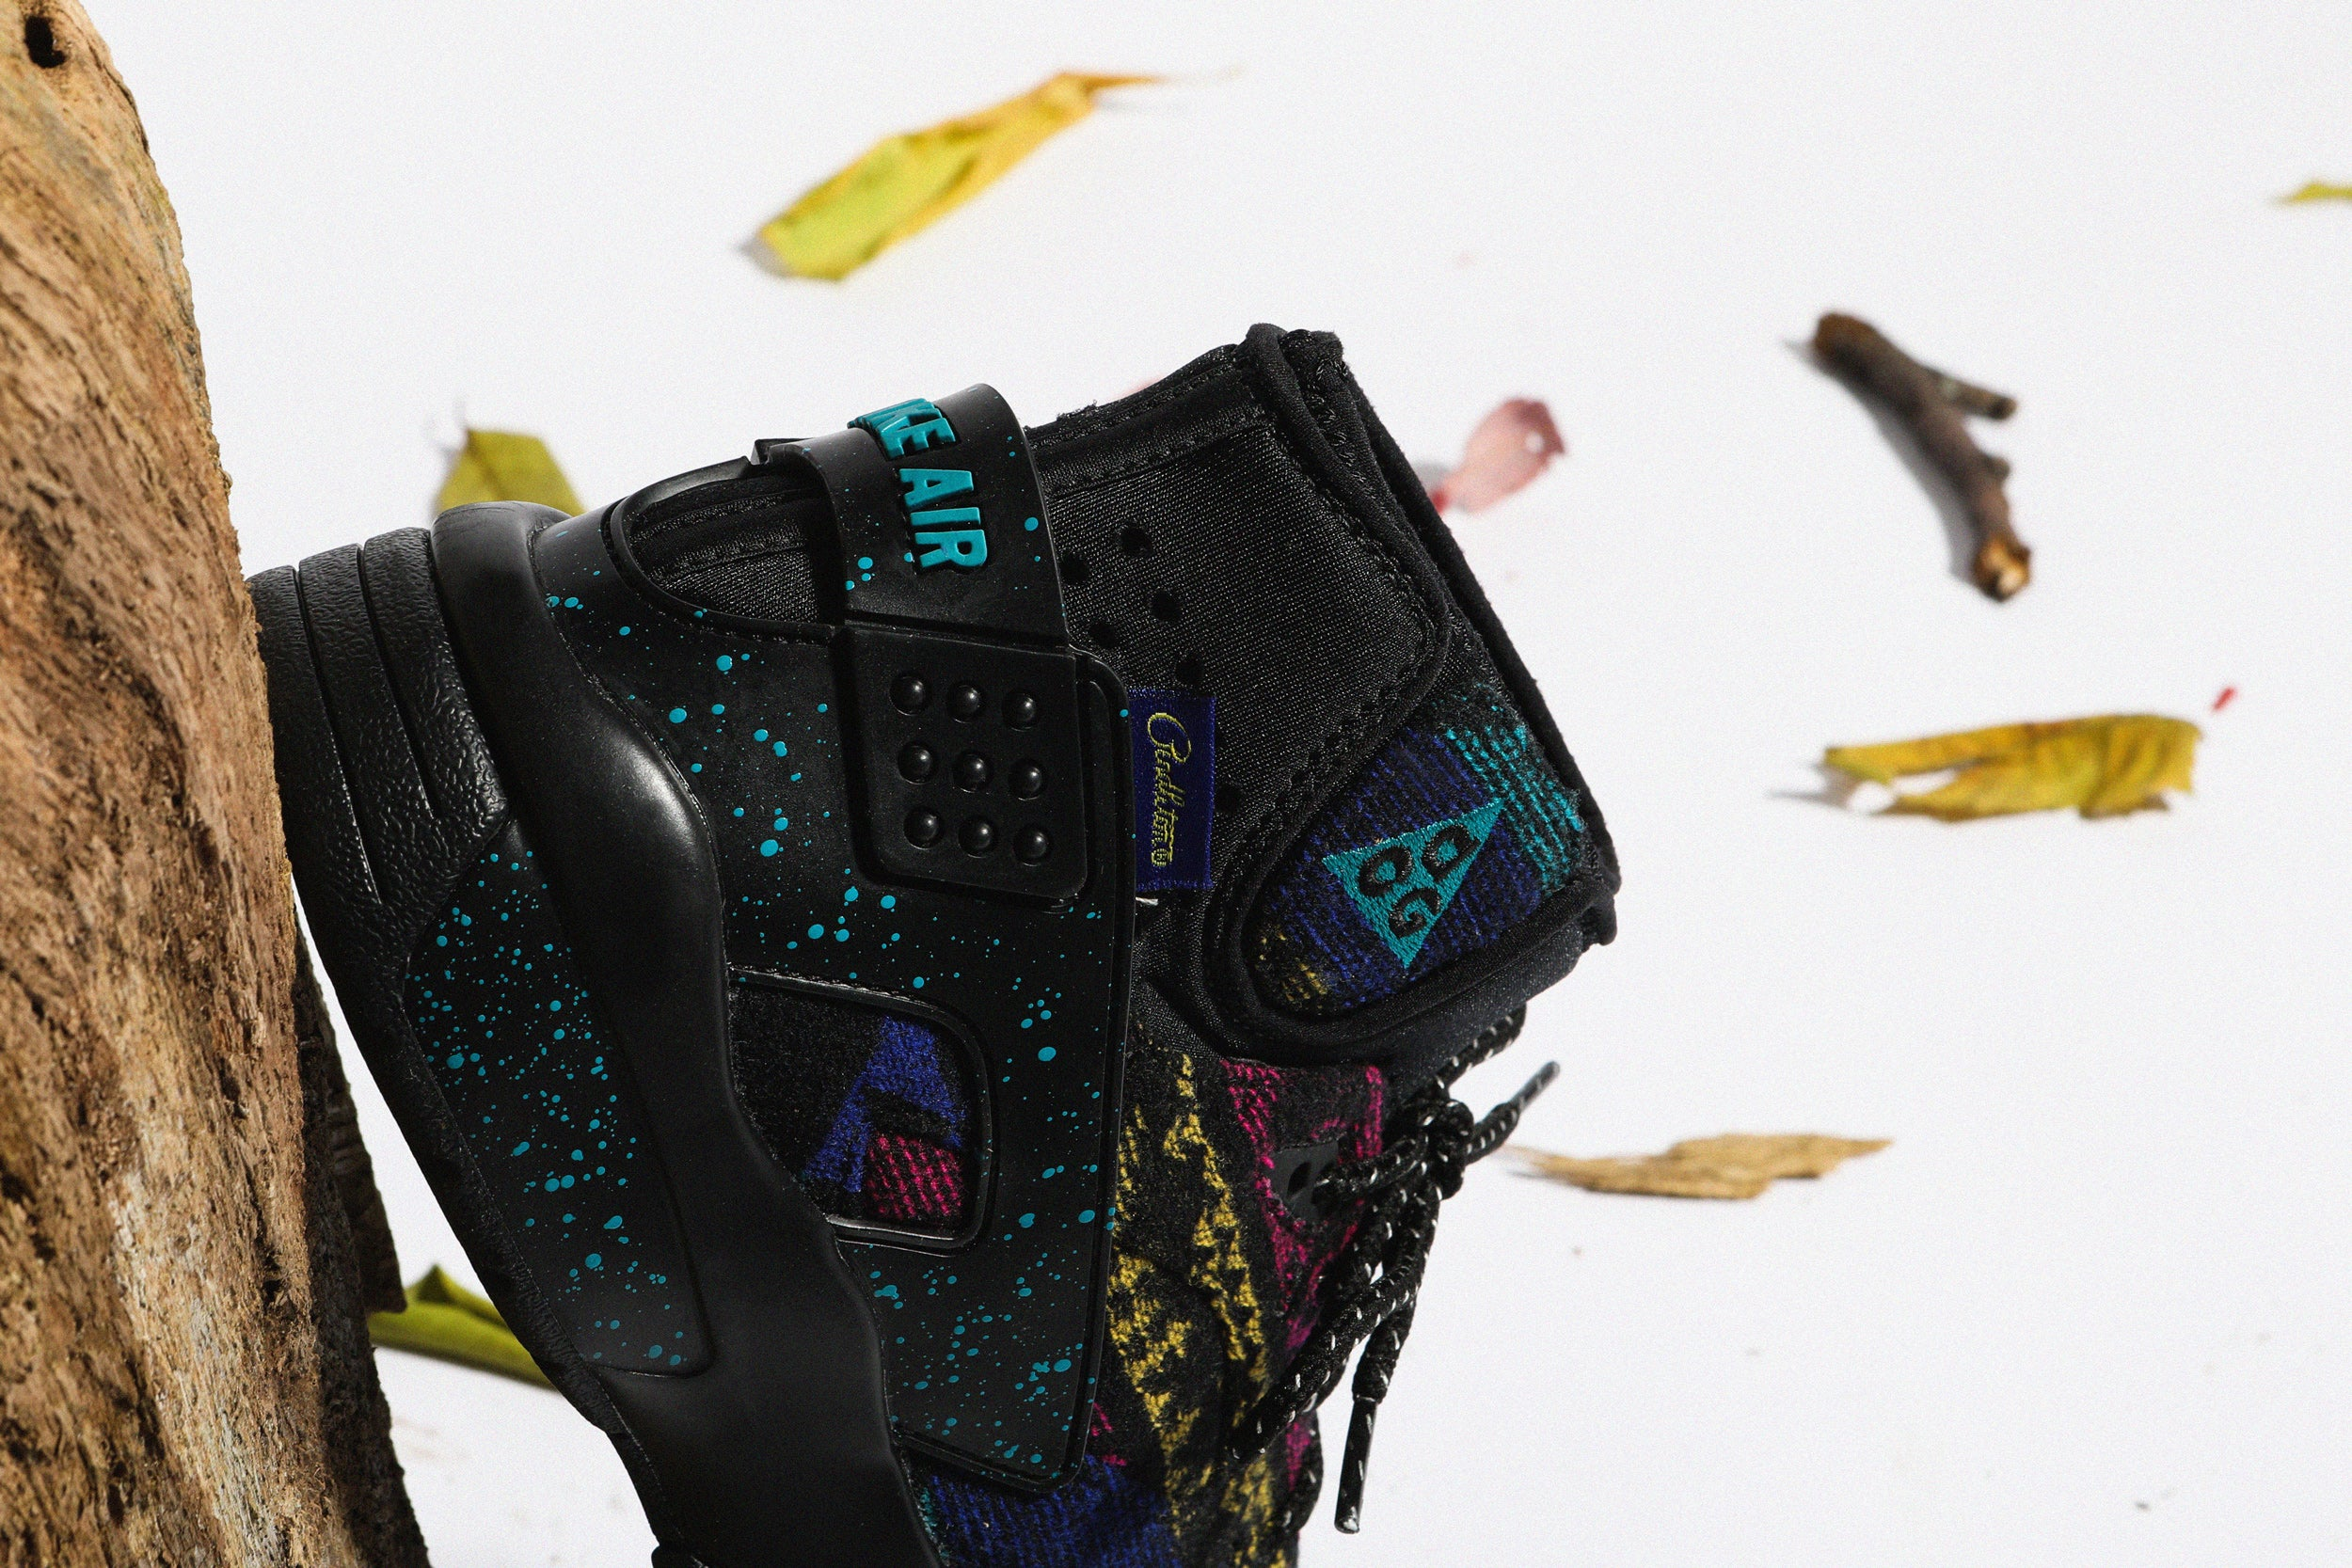 outlet store 033f9 d9905 Early ACG models like Son of Lava Dome, Wildwood, and the Super Dome boot  set the standard for this new blend of performance technology, style, ...